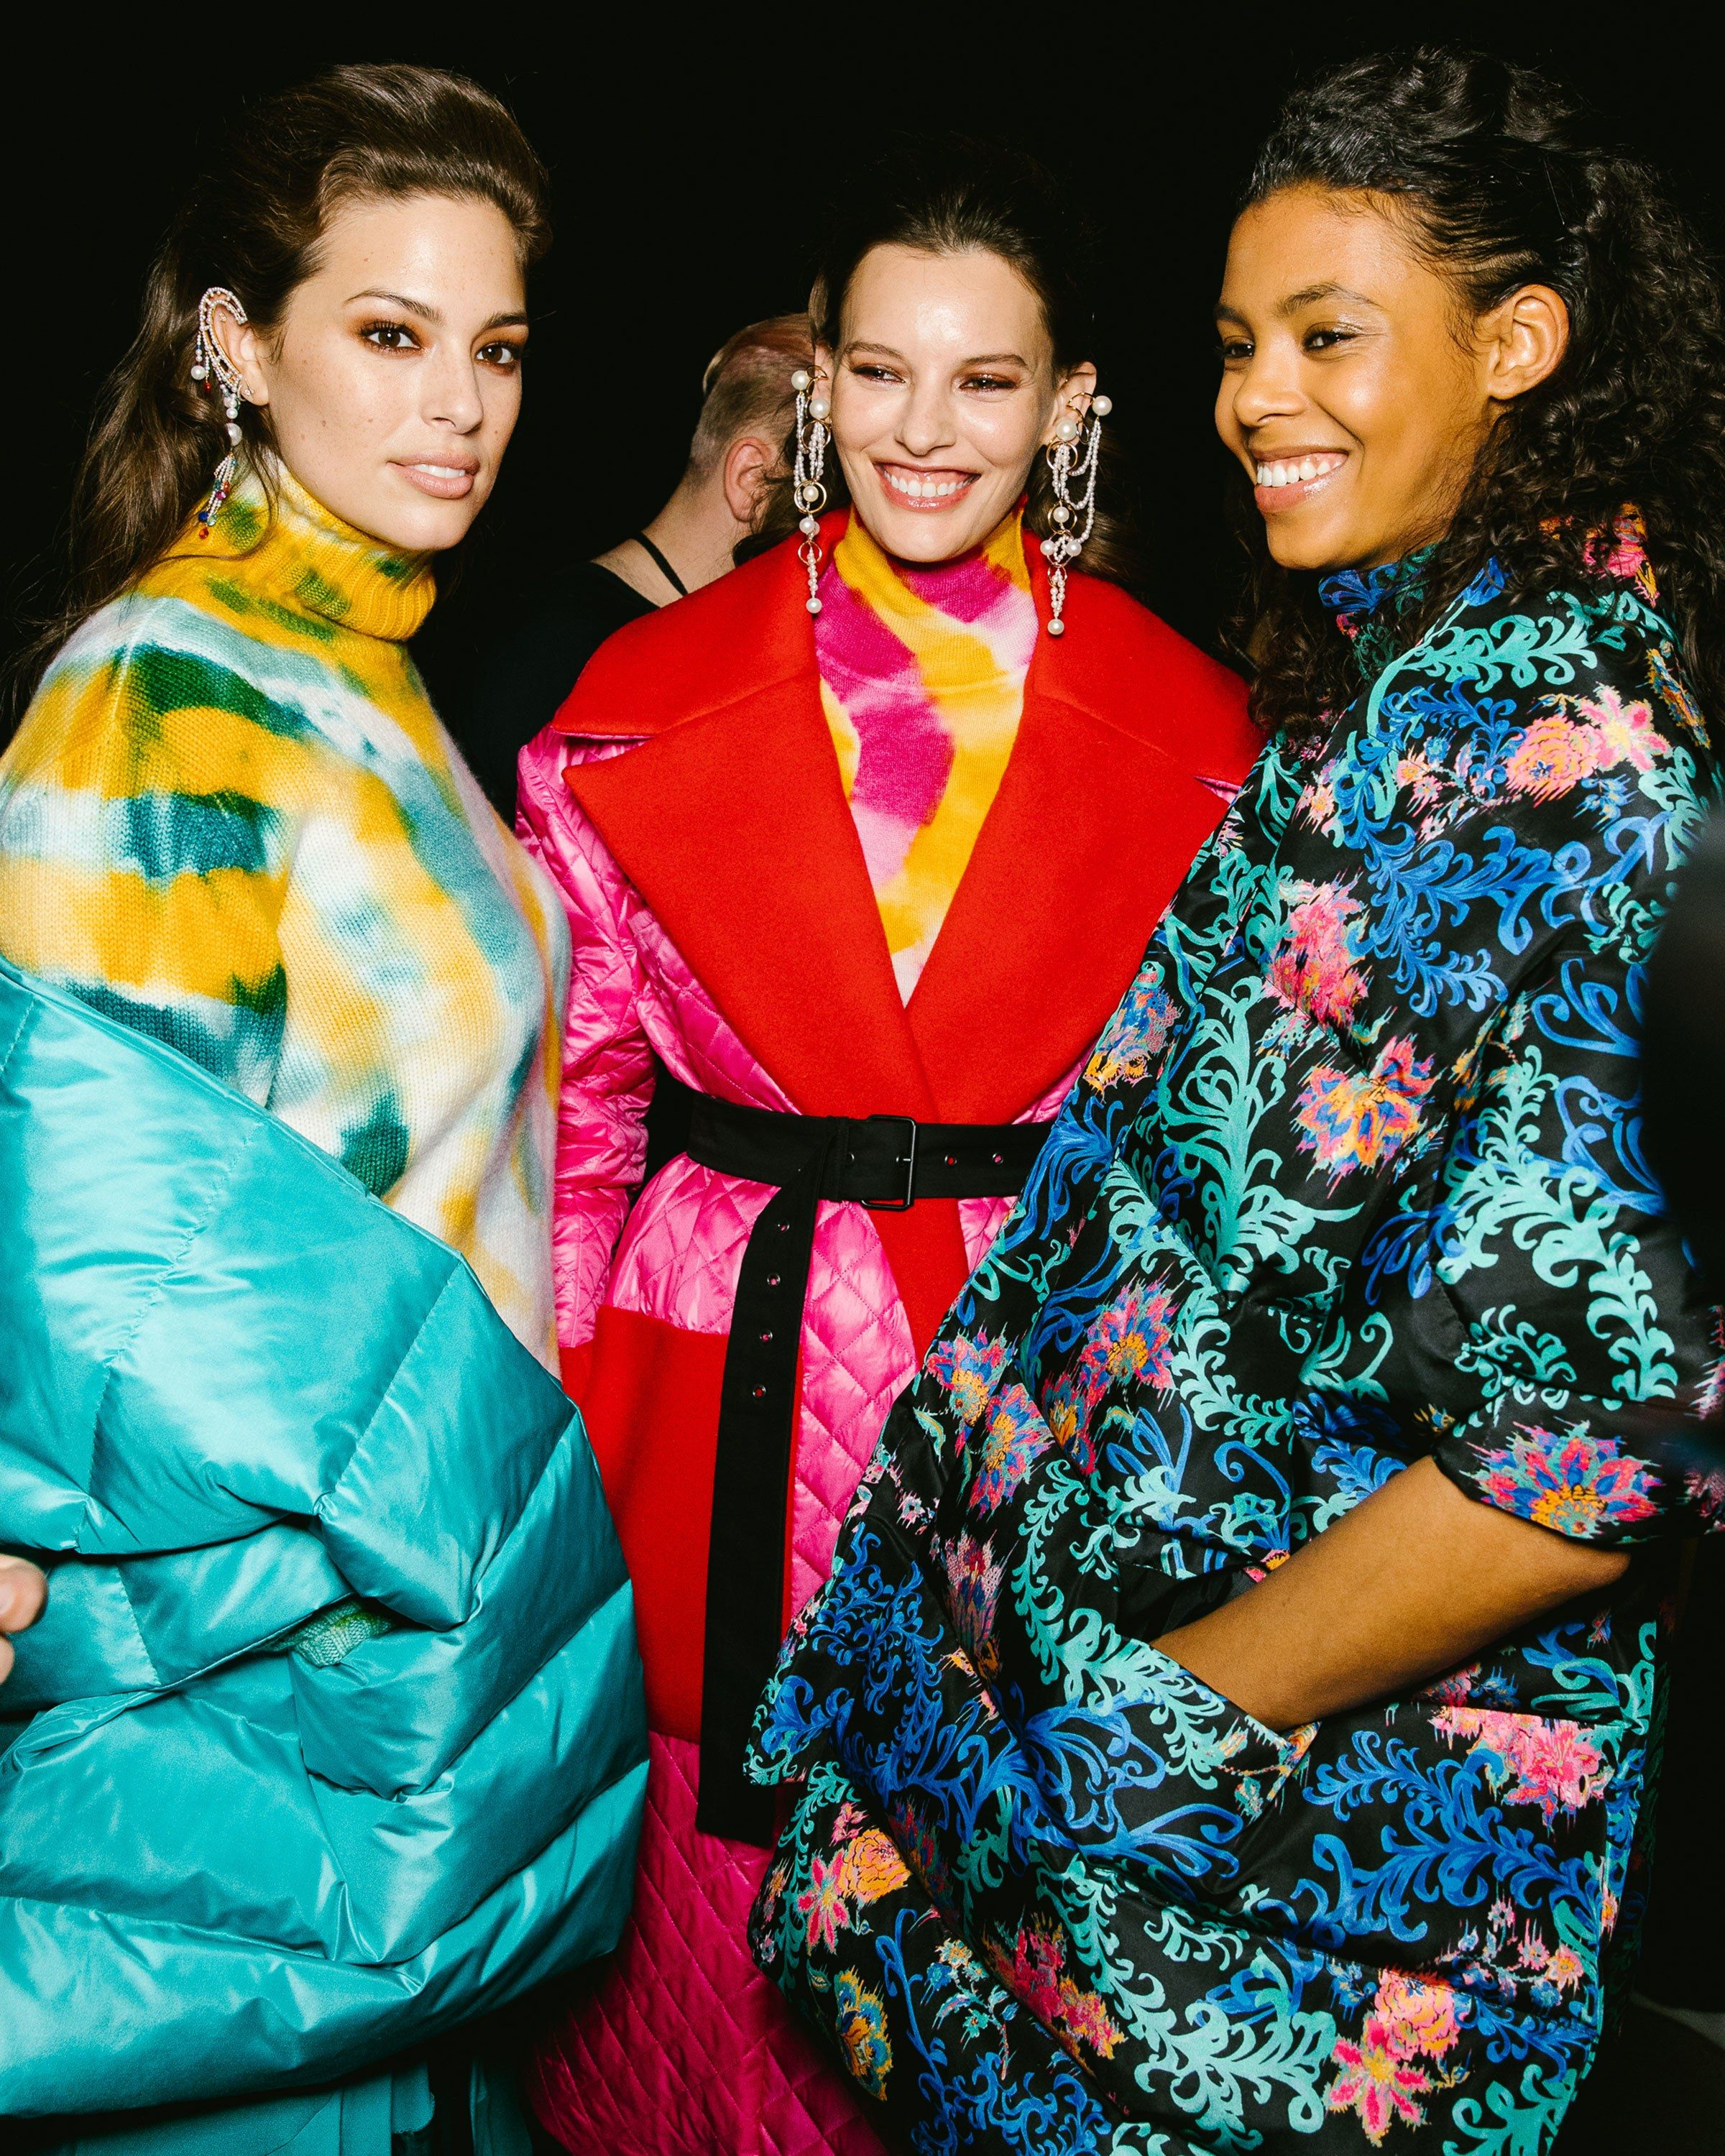 fashion designers top fashion designers and brands best new york designers Prabal Gurung Runway Fashion, Fashion News, Luxury Branding, Fashion  Pictures, Beautiful Dresses